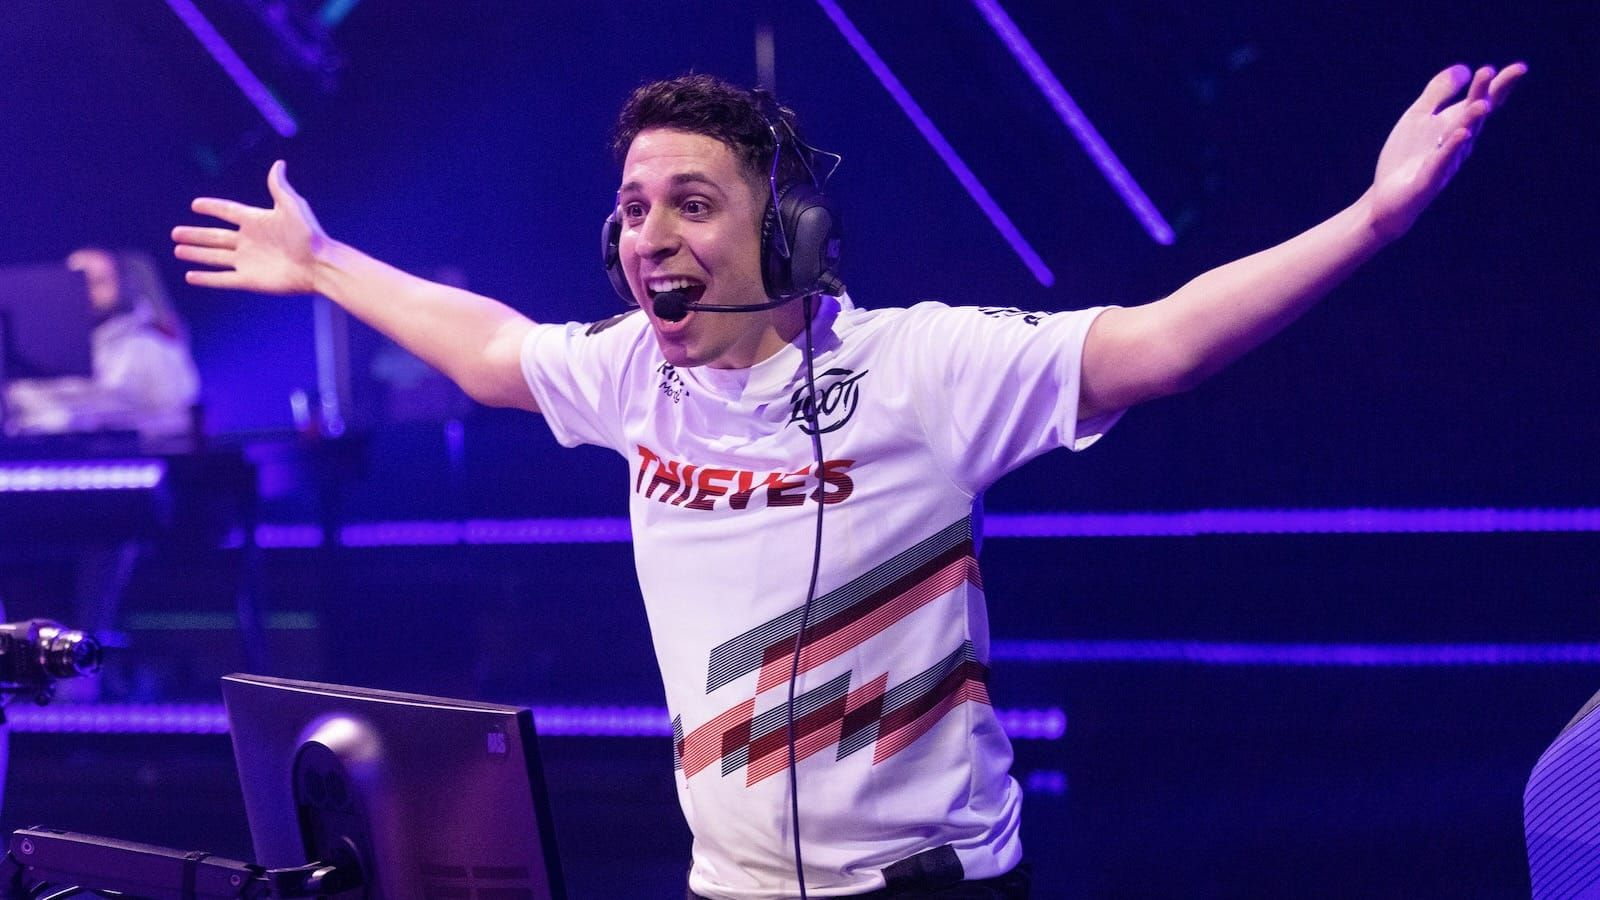 100 Thieves Valorant player steel standing up on excitedly on stage with arms spread wide